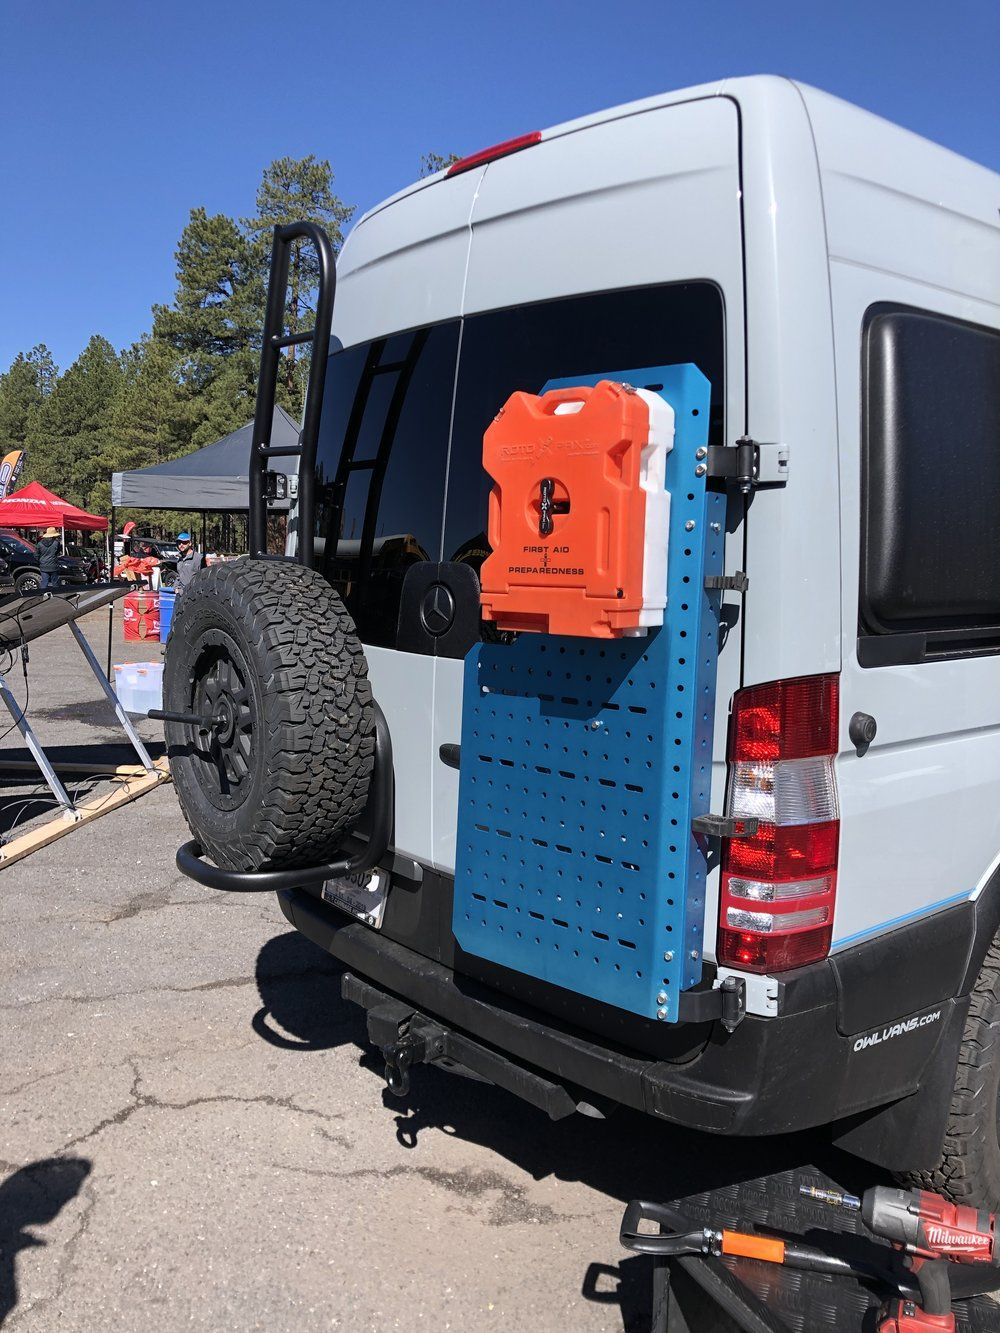 New Sherpa Cargo System Owl Van Engineering Cargo House